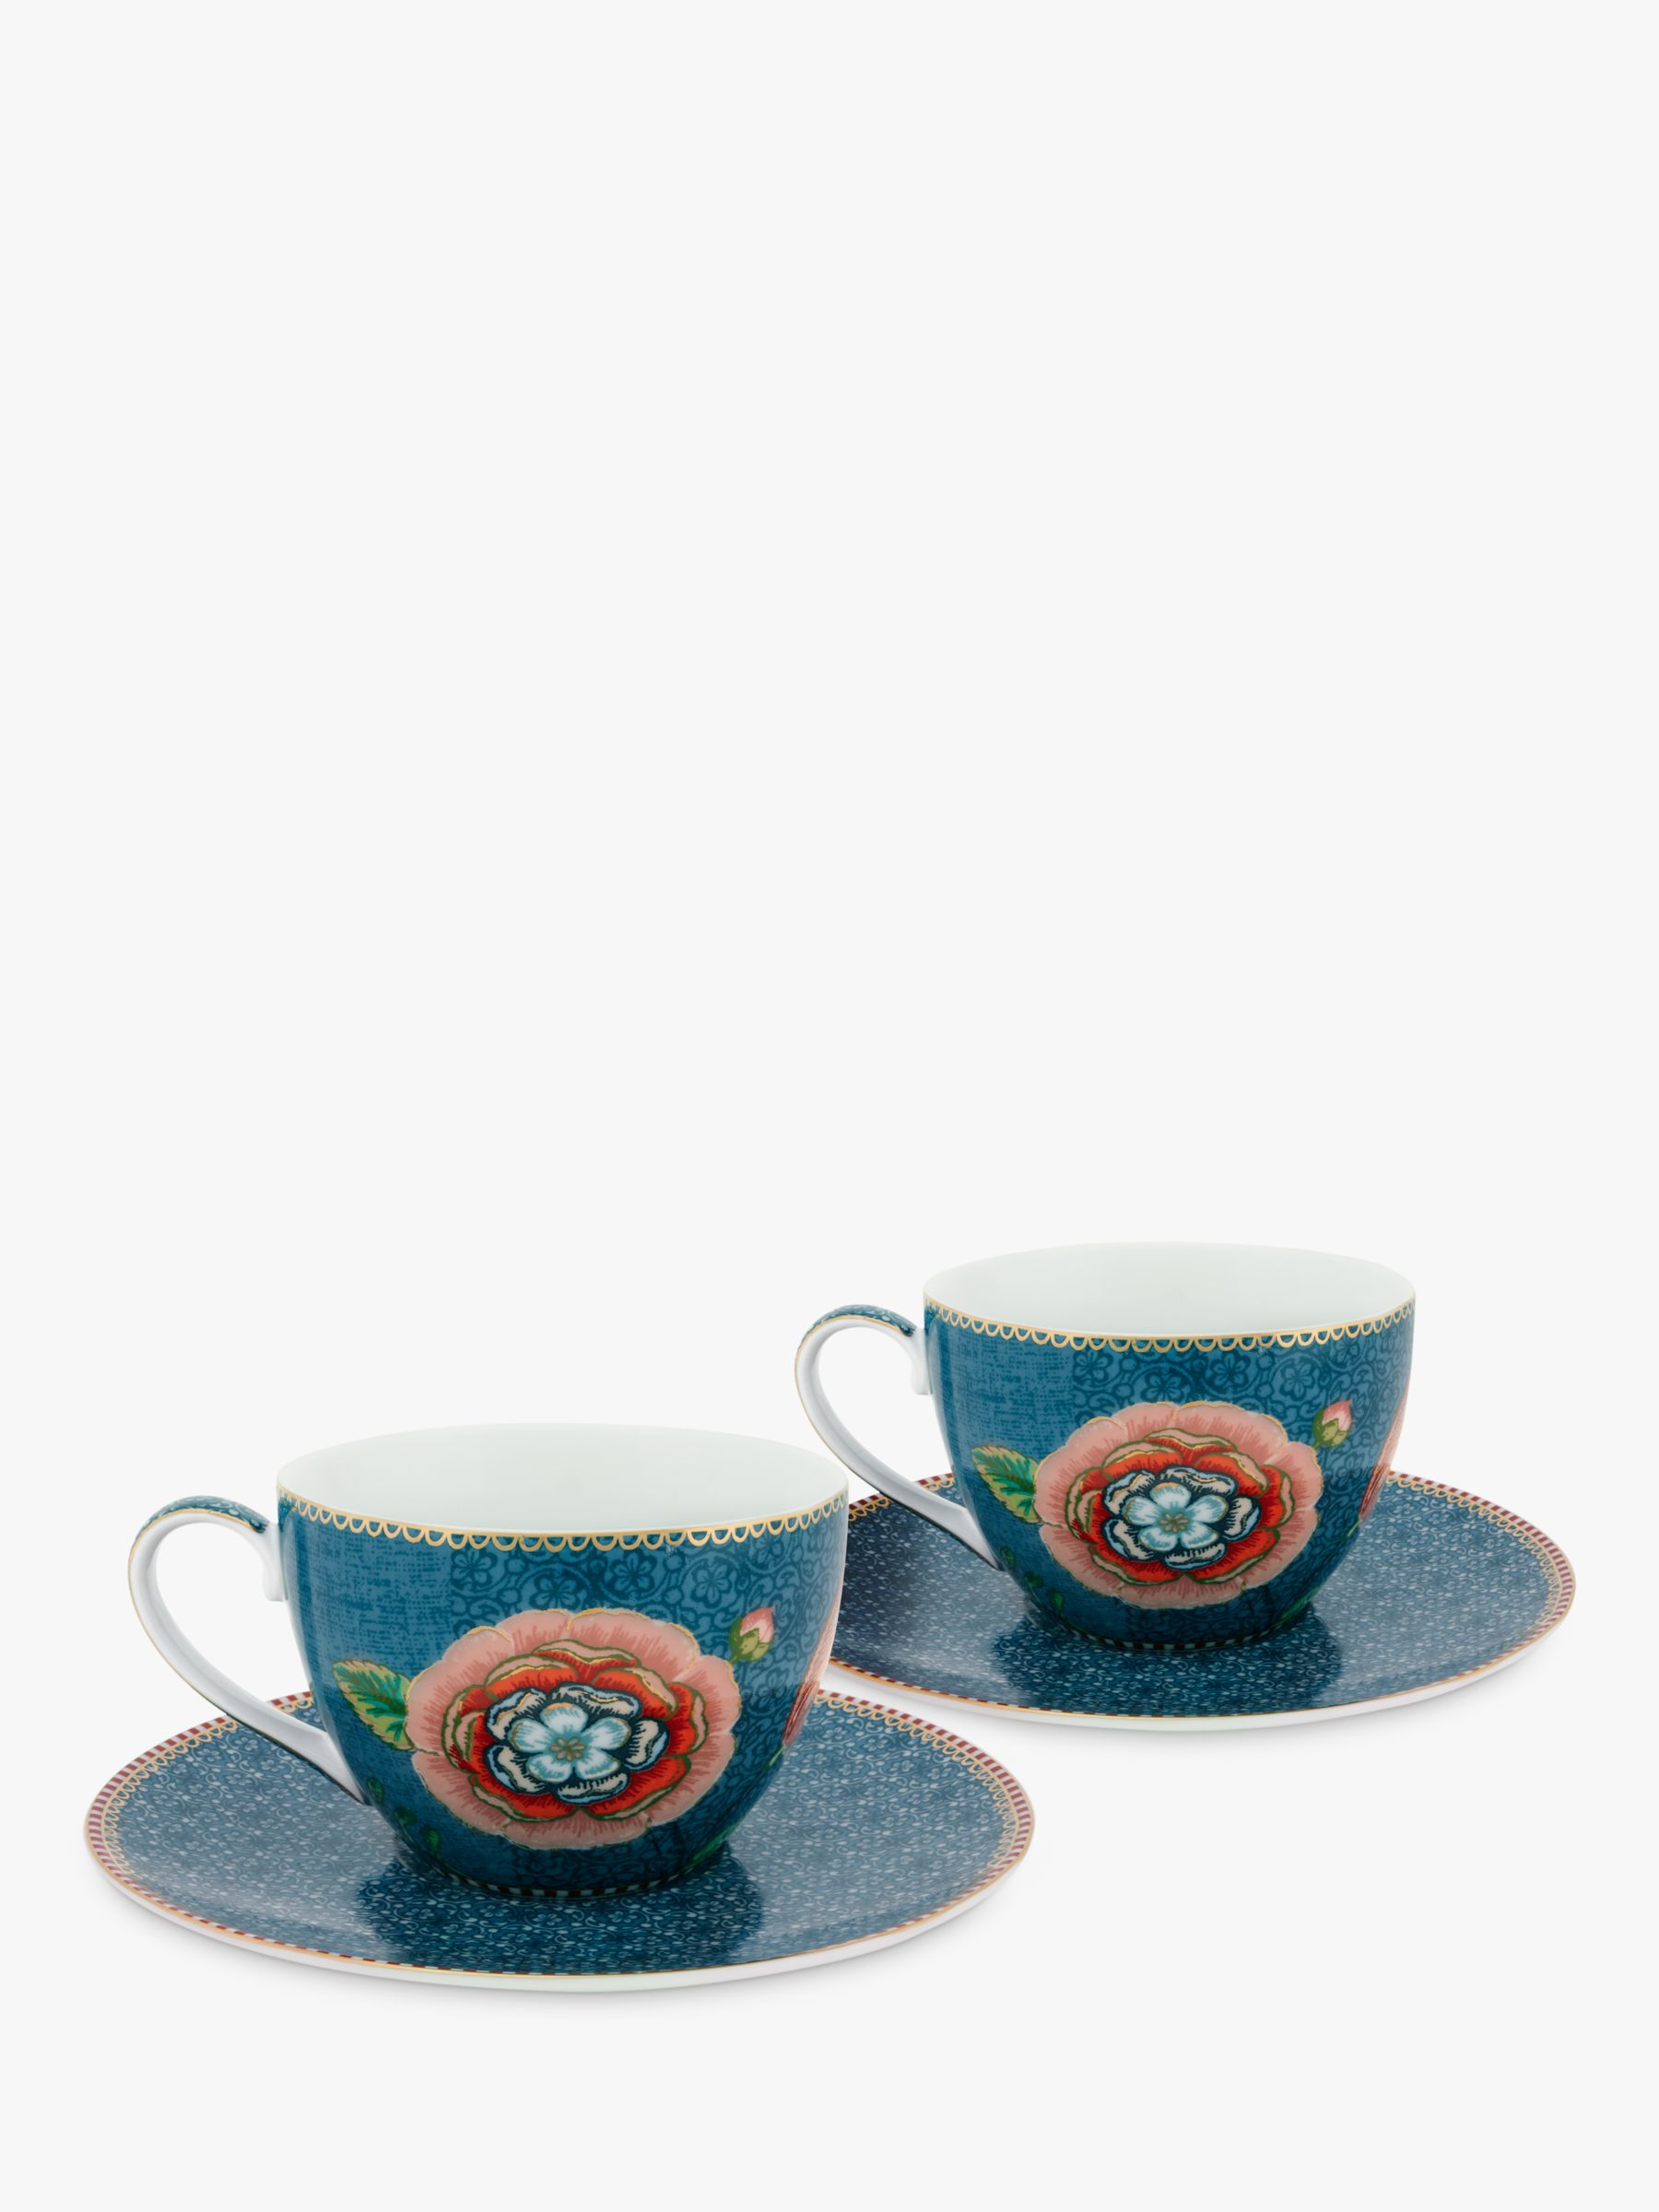 PiP Studio PiP Studio Spring To Life Cup & Saucer, Set of 2